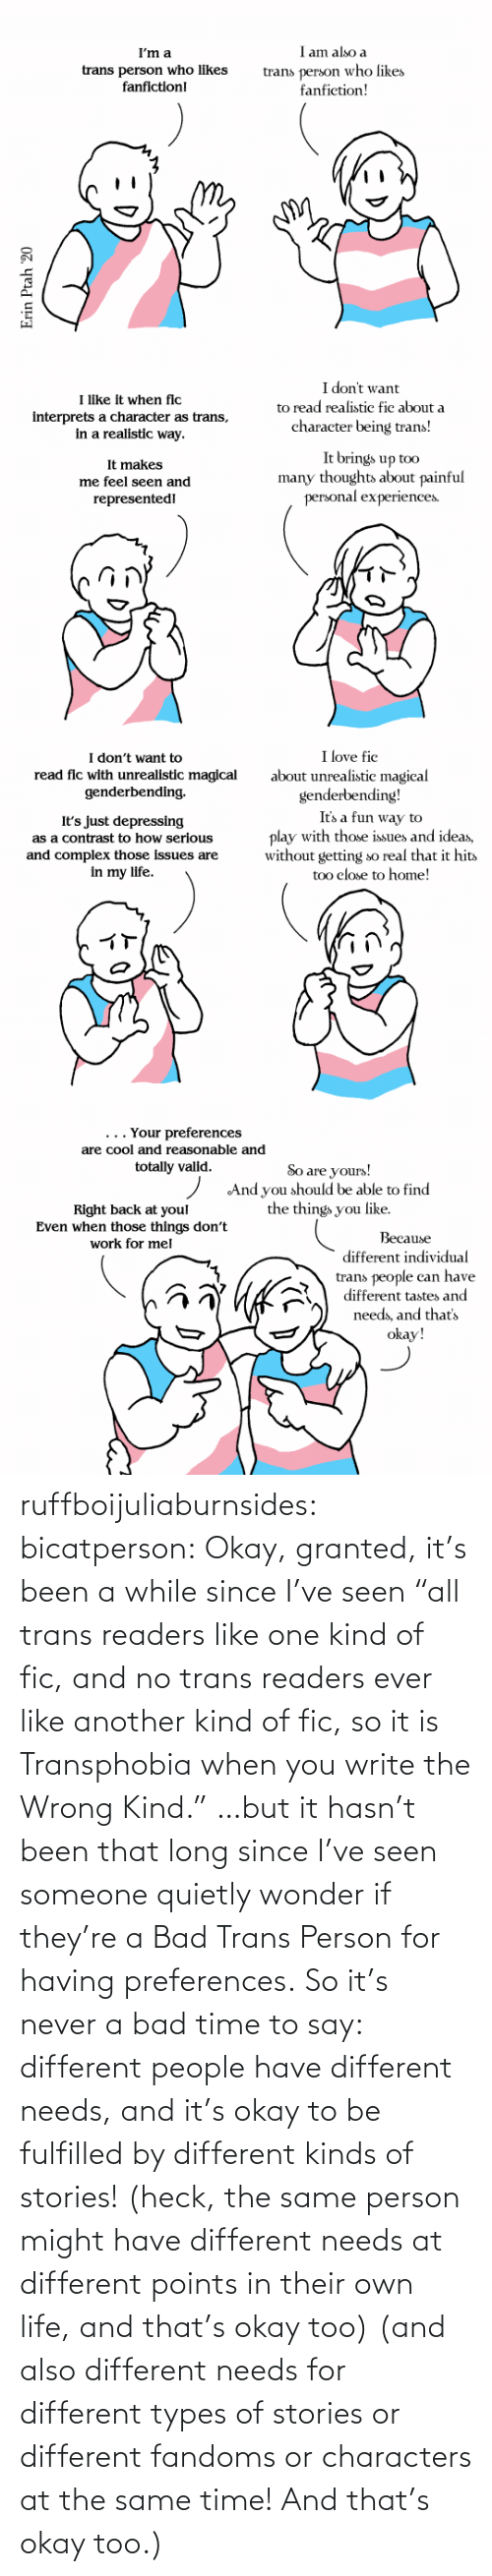 "granted: ruffboijuliaburnsides: bicatperson:   Okay, granted, it's been a while since I've seen ""all trans readers  like one kind of fic, and no trans readers ever like another kind of  fic, so it is Transphobia when you write the Wrong Kind."" …but it hasn't been that long since I've seen someone quietly wonder if they're a Bad Trans Person for having preferences. So  it's never a bad time to say: different people have different needs,  and it's okay to be fulfilled by different kinds of stories! (heck, the same person might have different needs at different points in their own life, and that's okay too)    (and also different needs for different types of stories or different fandoms or characters at the same time!  And that's okay too.)"